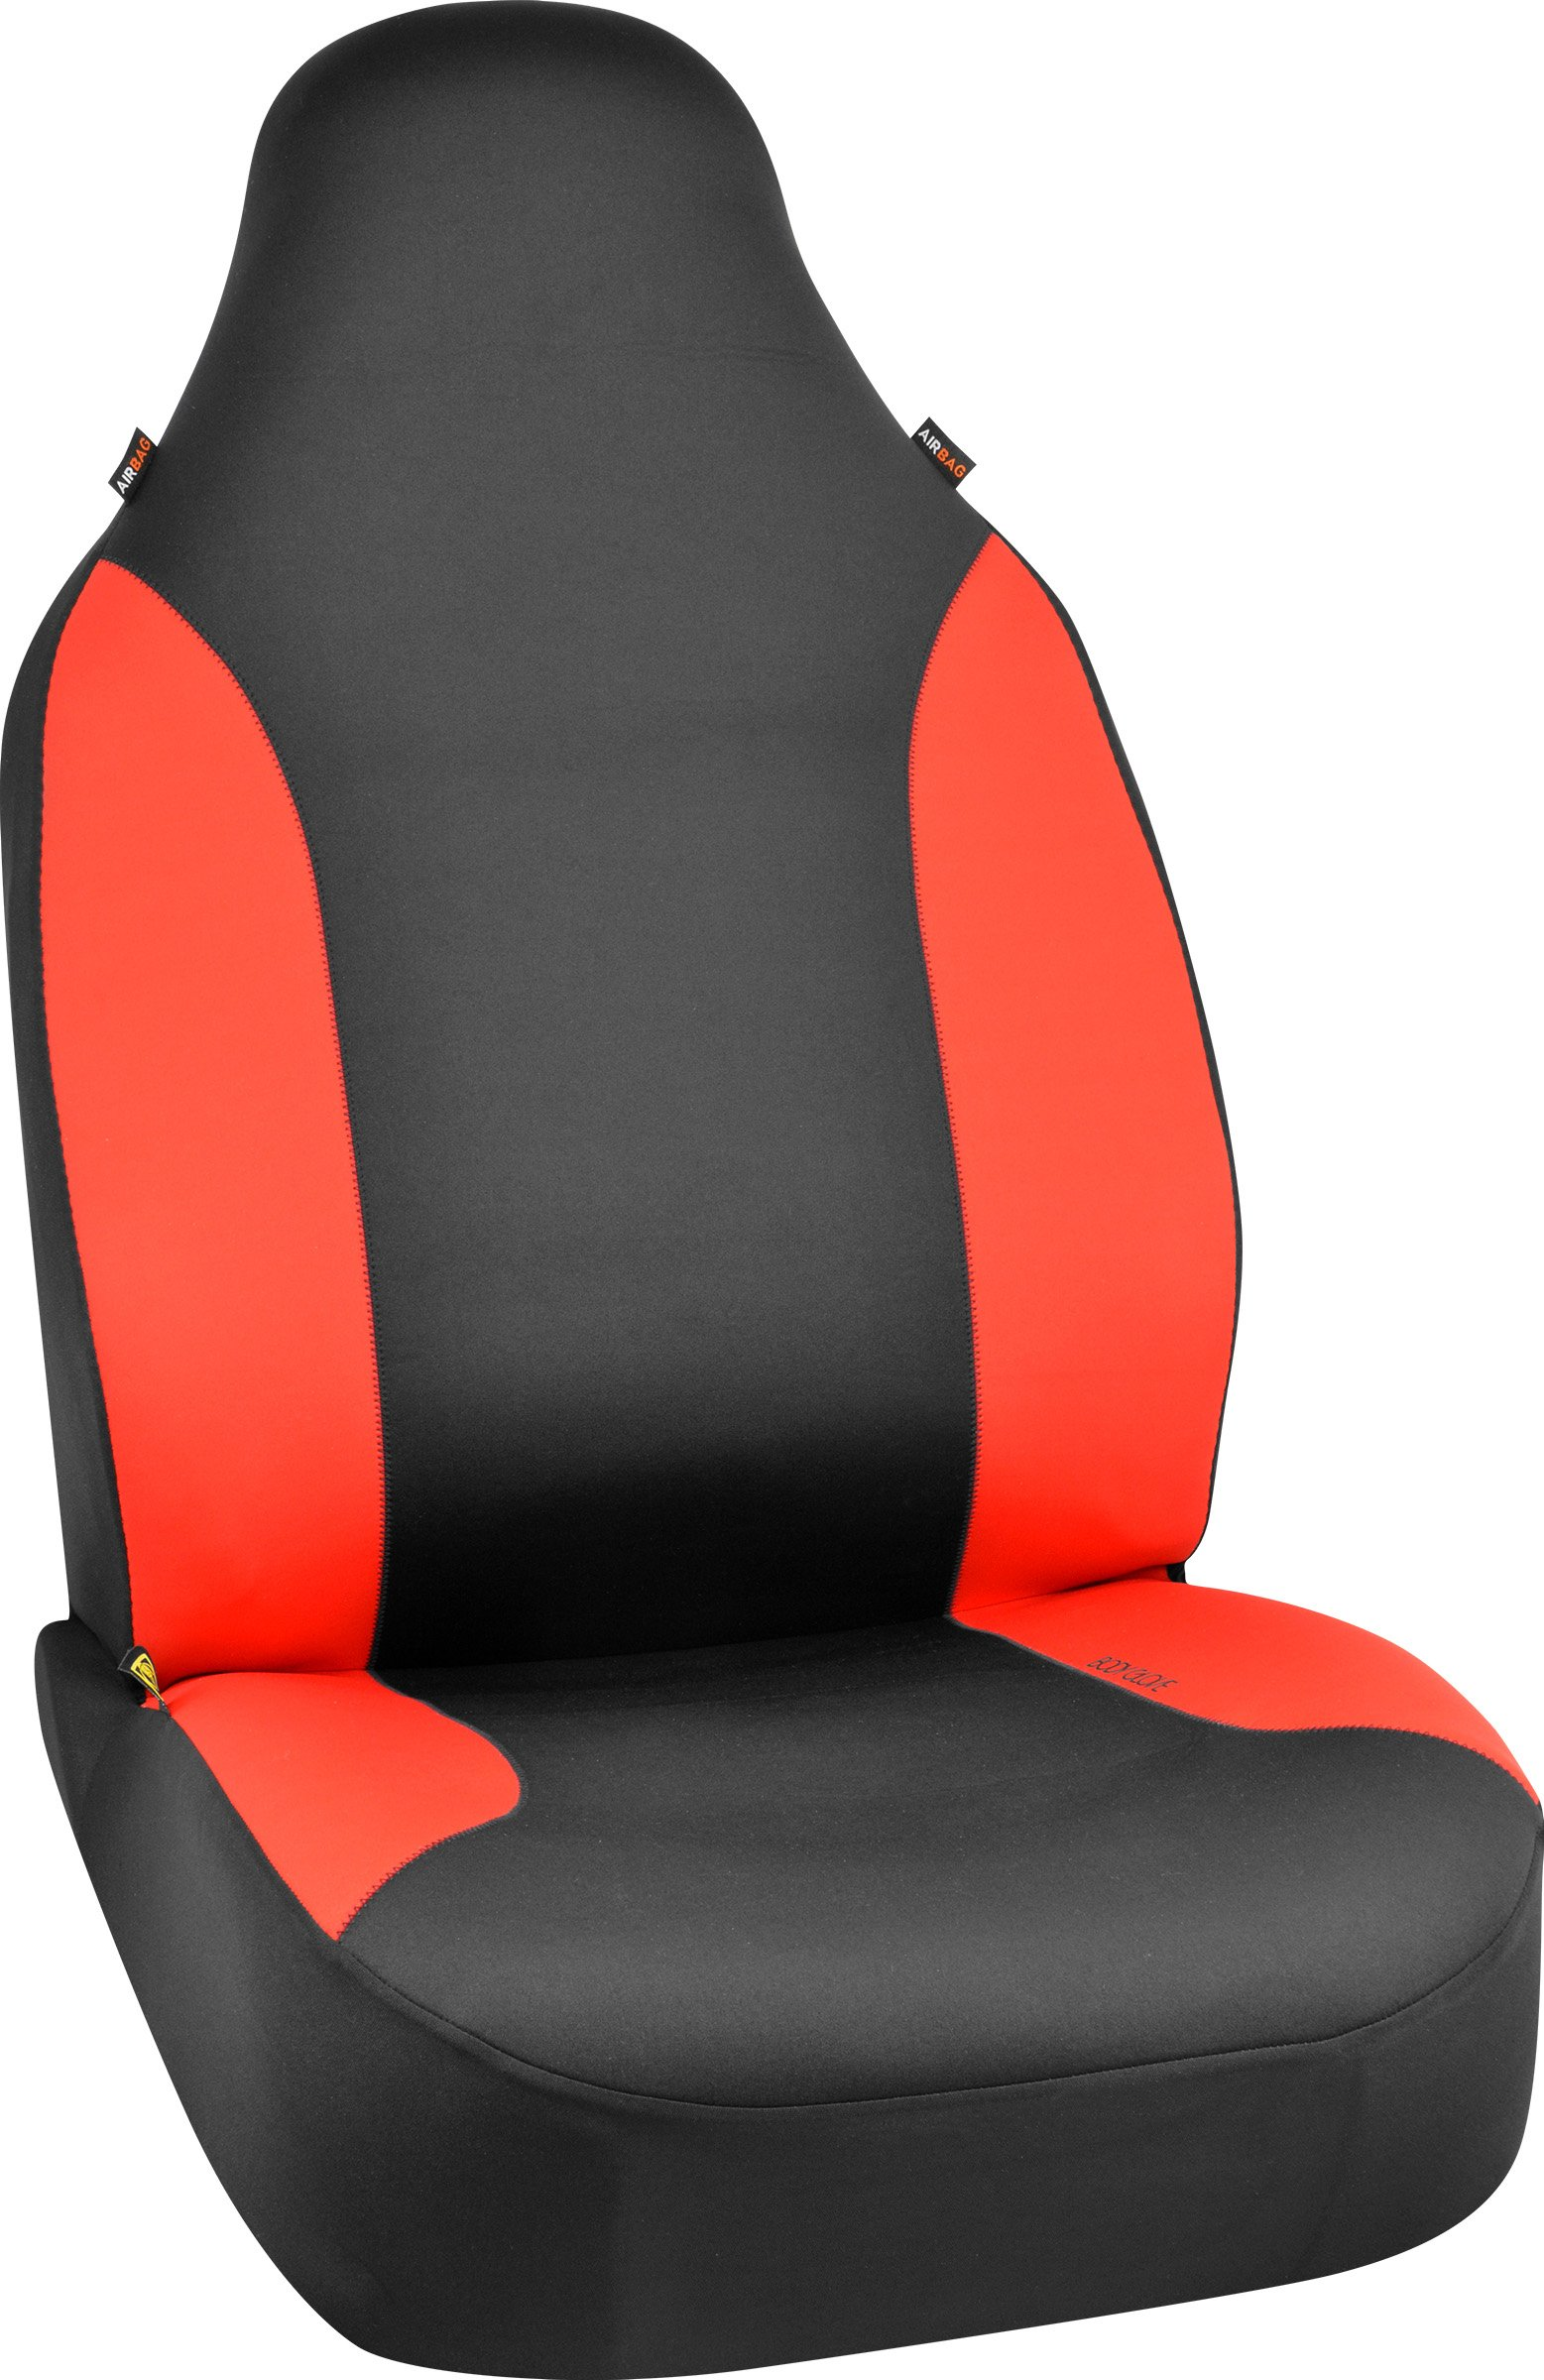 Bell Automotive 22-1-70381-9 Red Body Glove Hyper-Fit Seat Cover by Bell Automotive